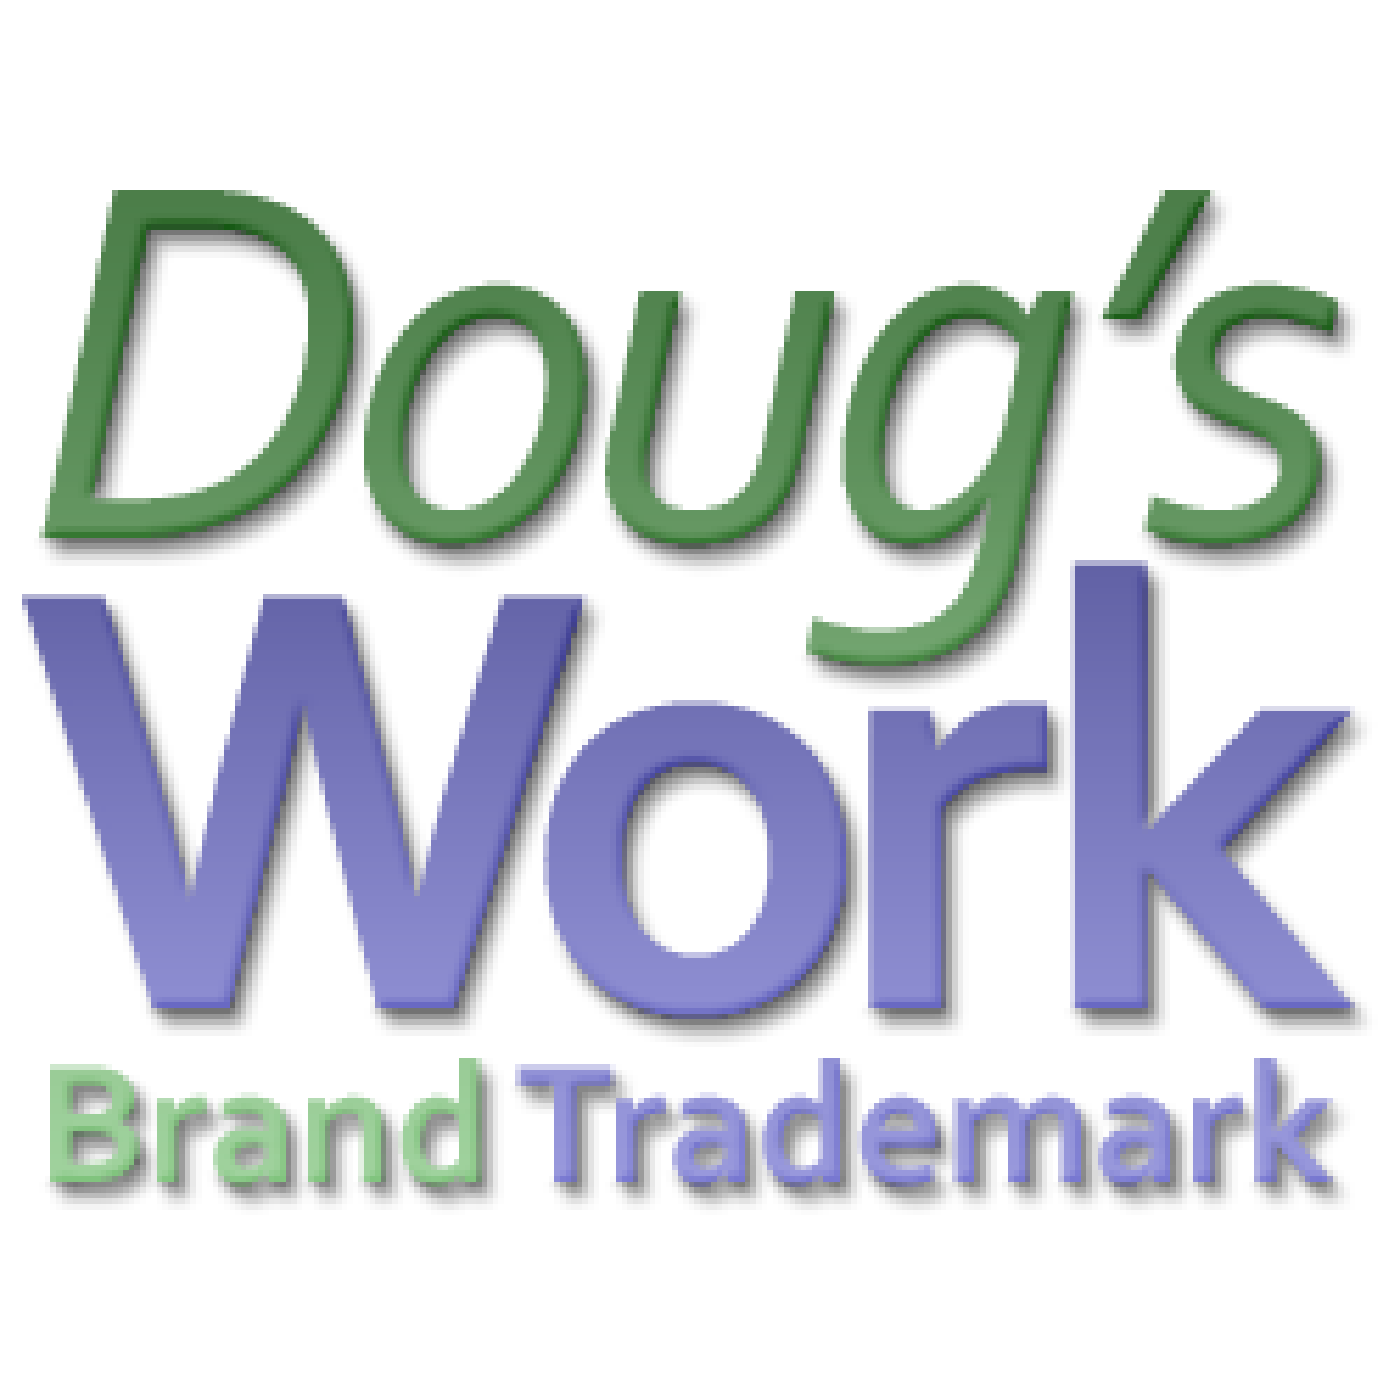 Doug's Work - Brand Trademark